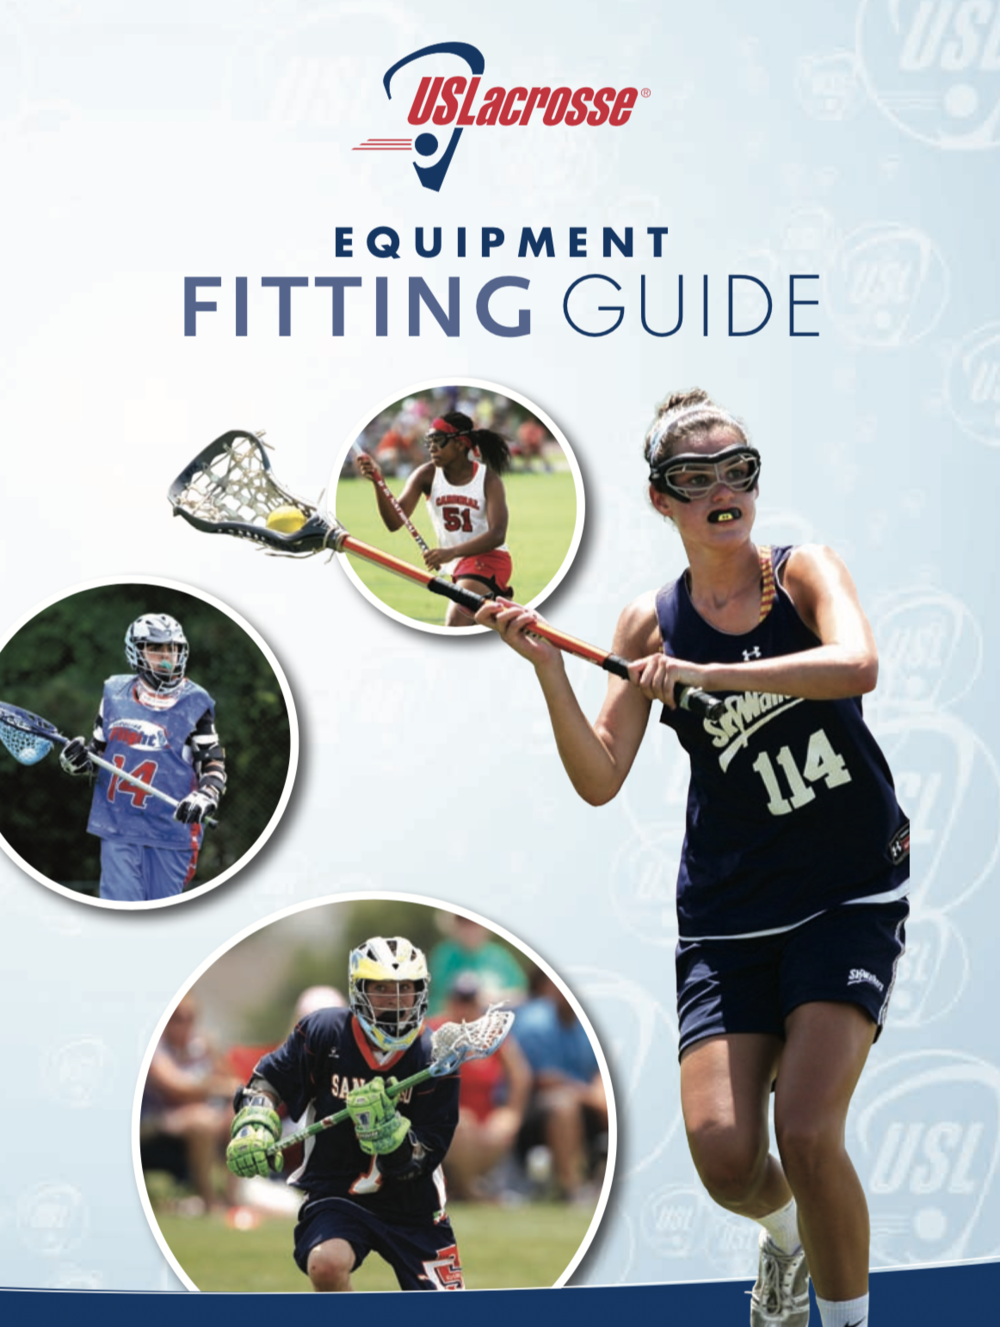 Learn about the required equipment and how to fit it to your player.